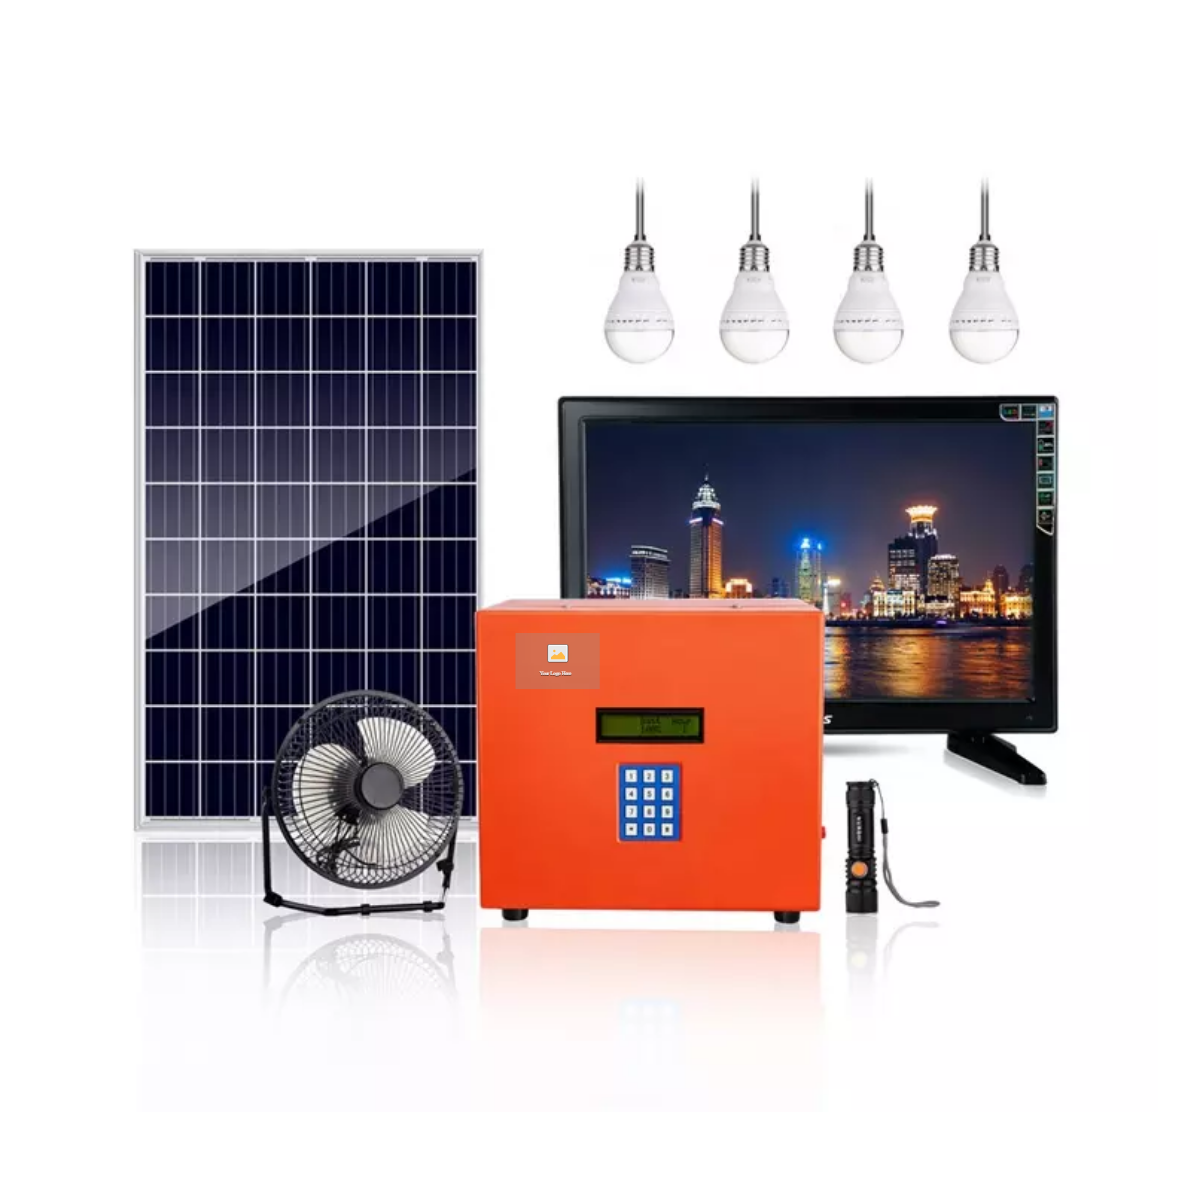 Portable payg solar generator 30W for home use all in one portable kit with lithium battery